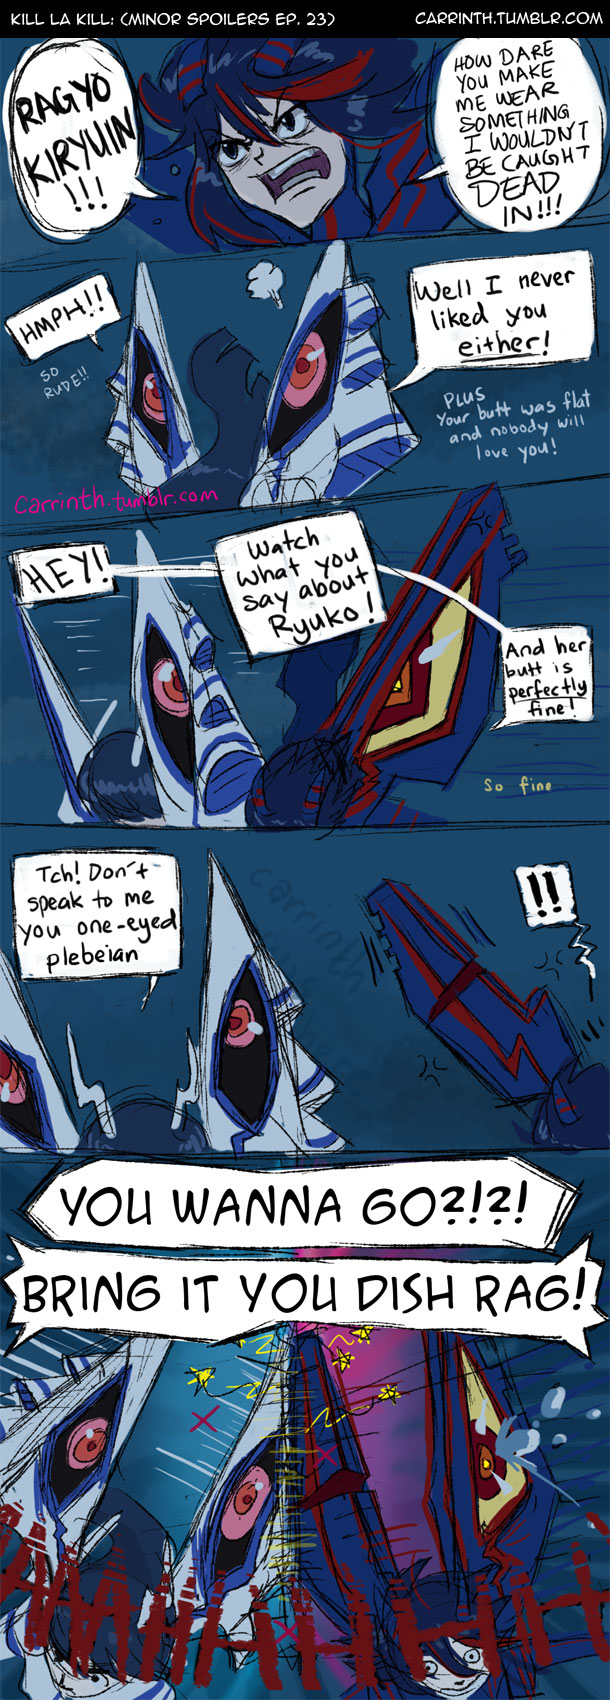 Kill la Kill: Rude Declarations (minor spoilers) by carrinth